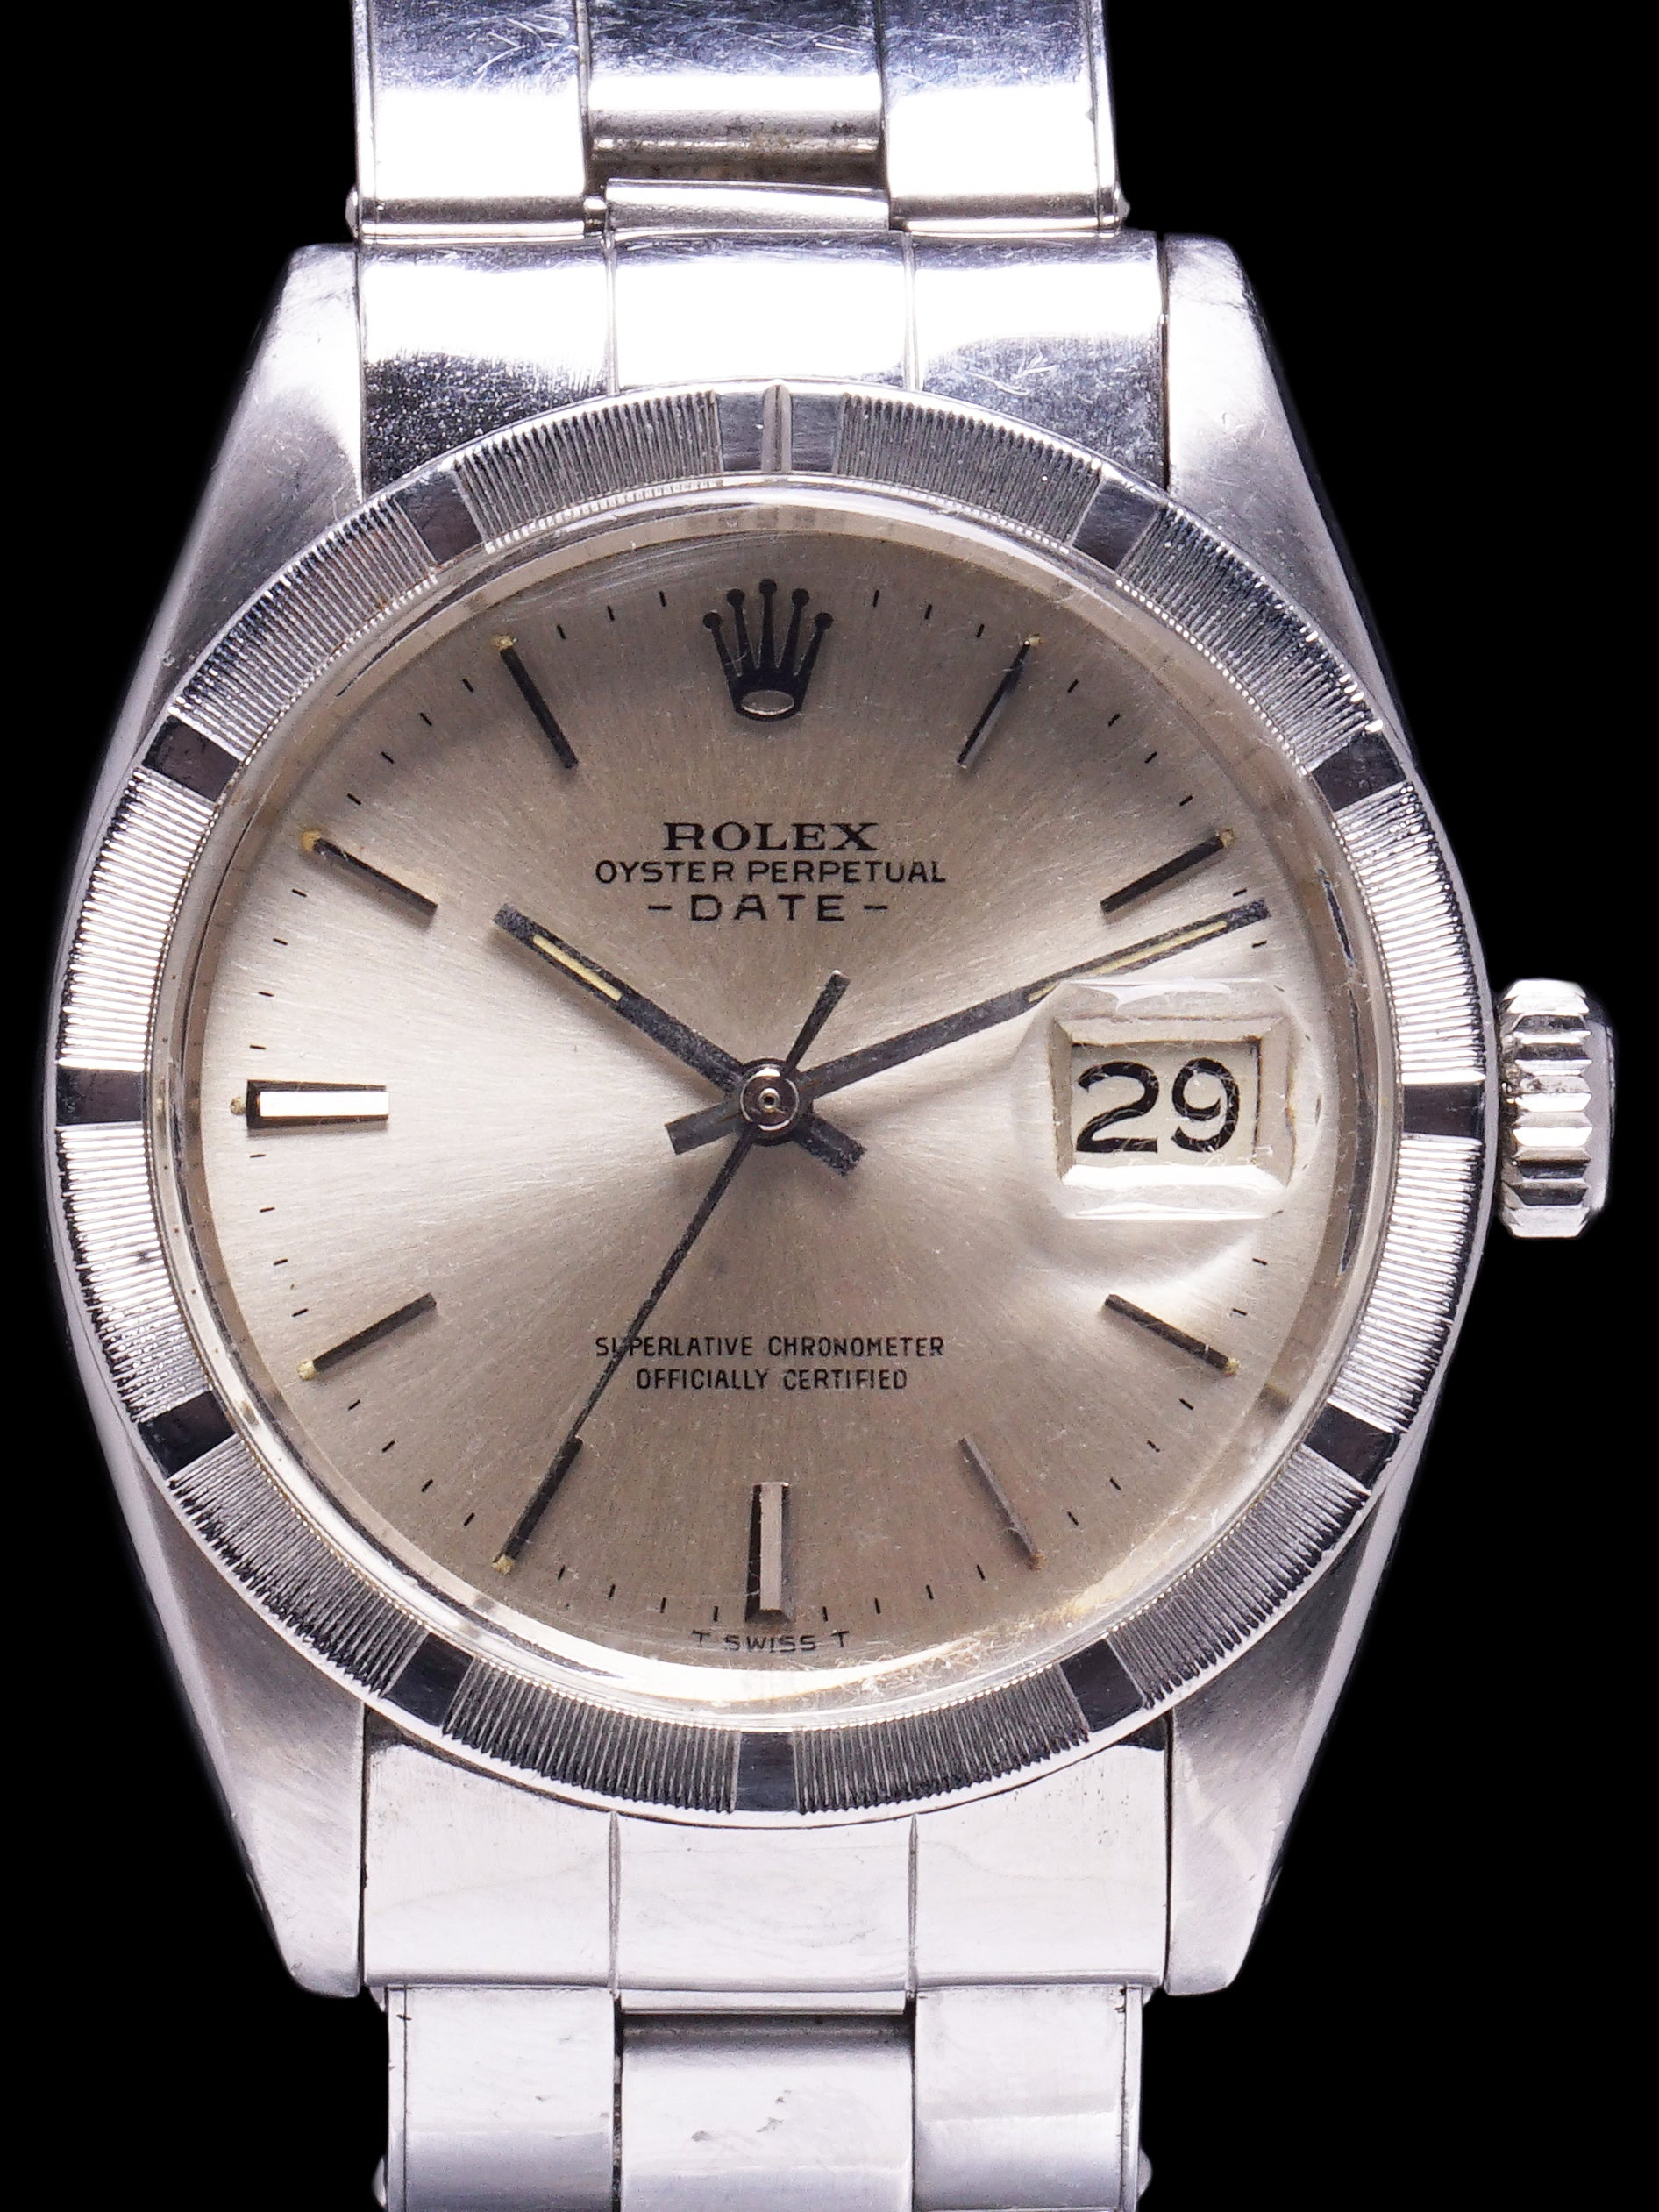 1966 Rolex Oyster-Perpetual Date (Ref. 1501) With Box and Double Punched Papers - Saigon Special